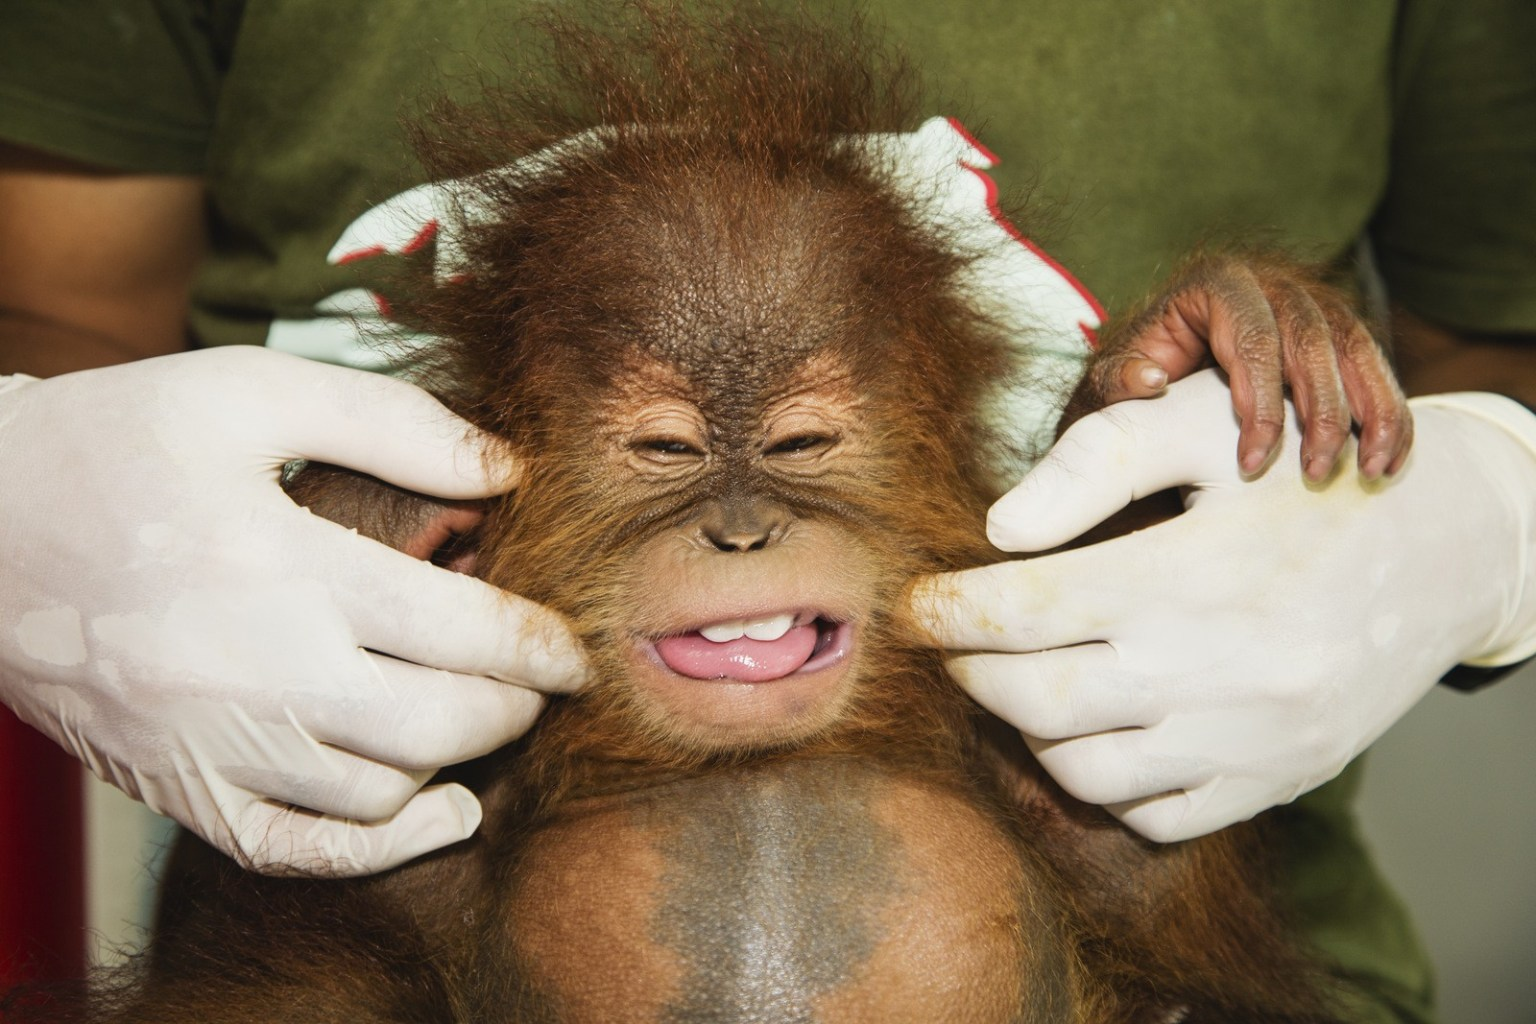 Image: A keeper helps the baby orangutan make a funny face